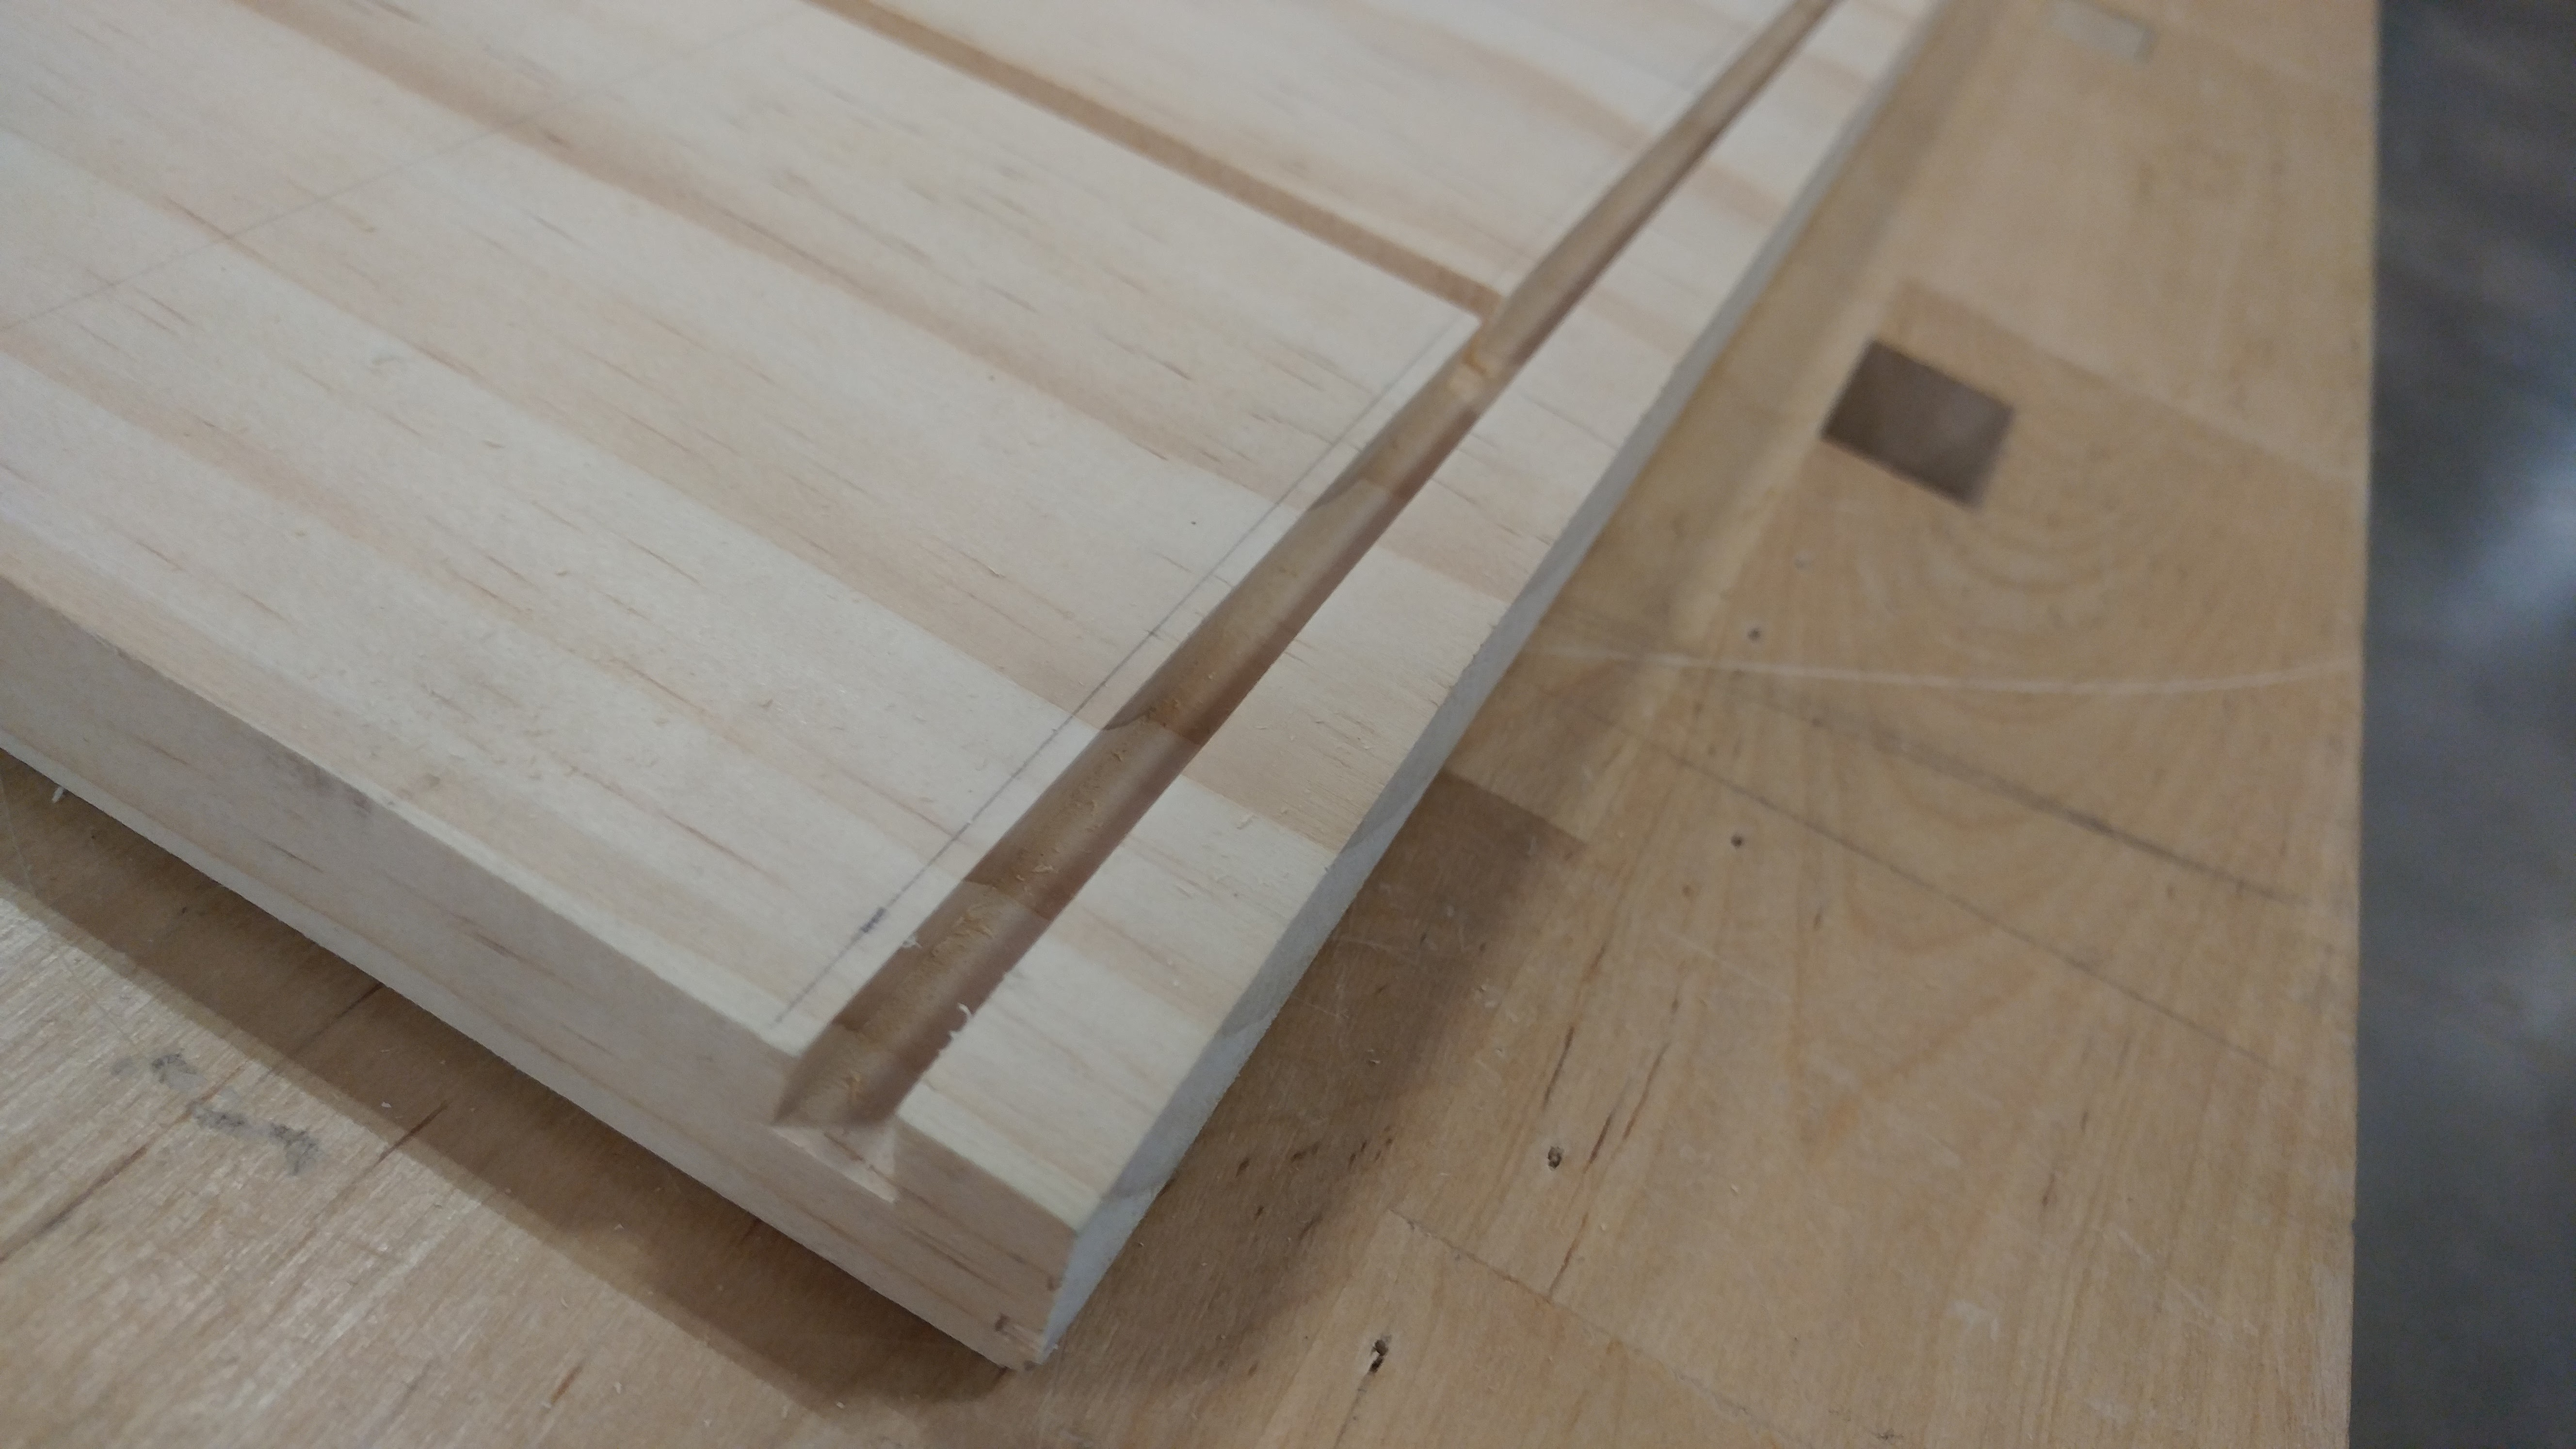 detail of the sliding dovetail in the base bottom